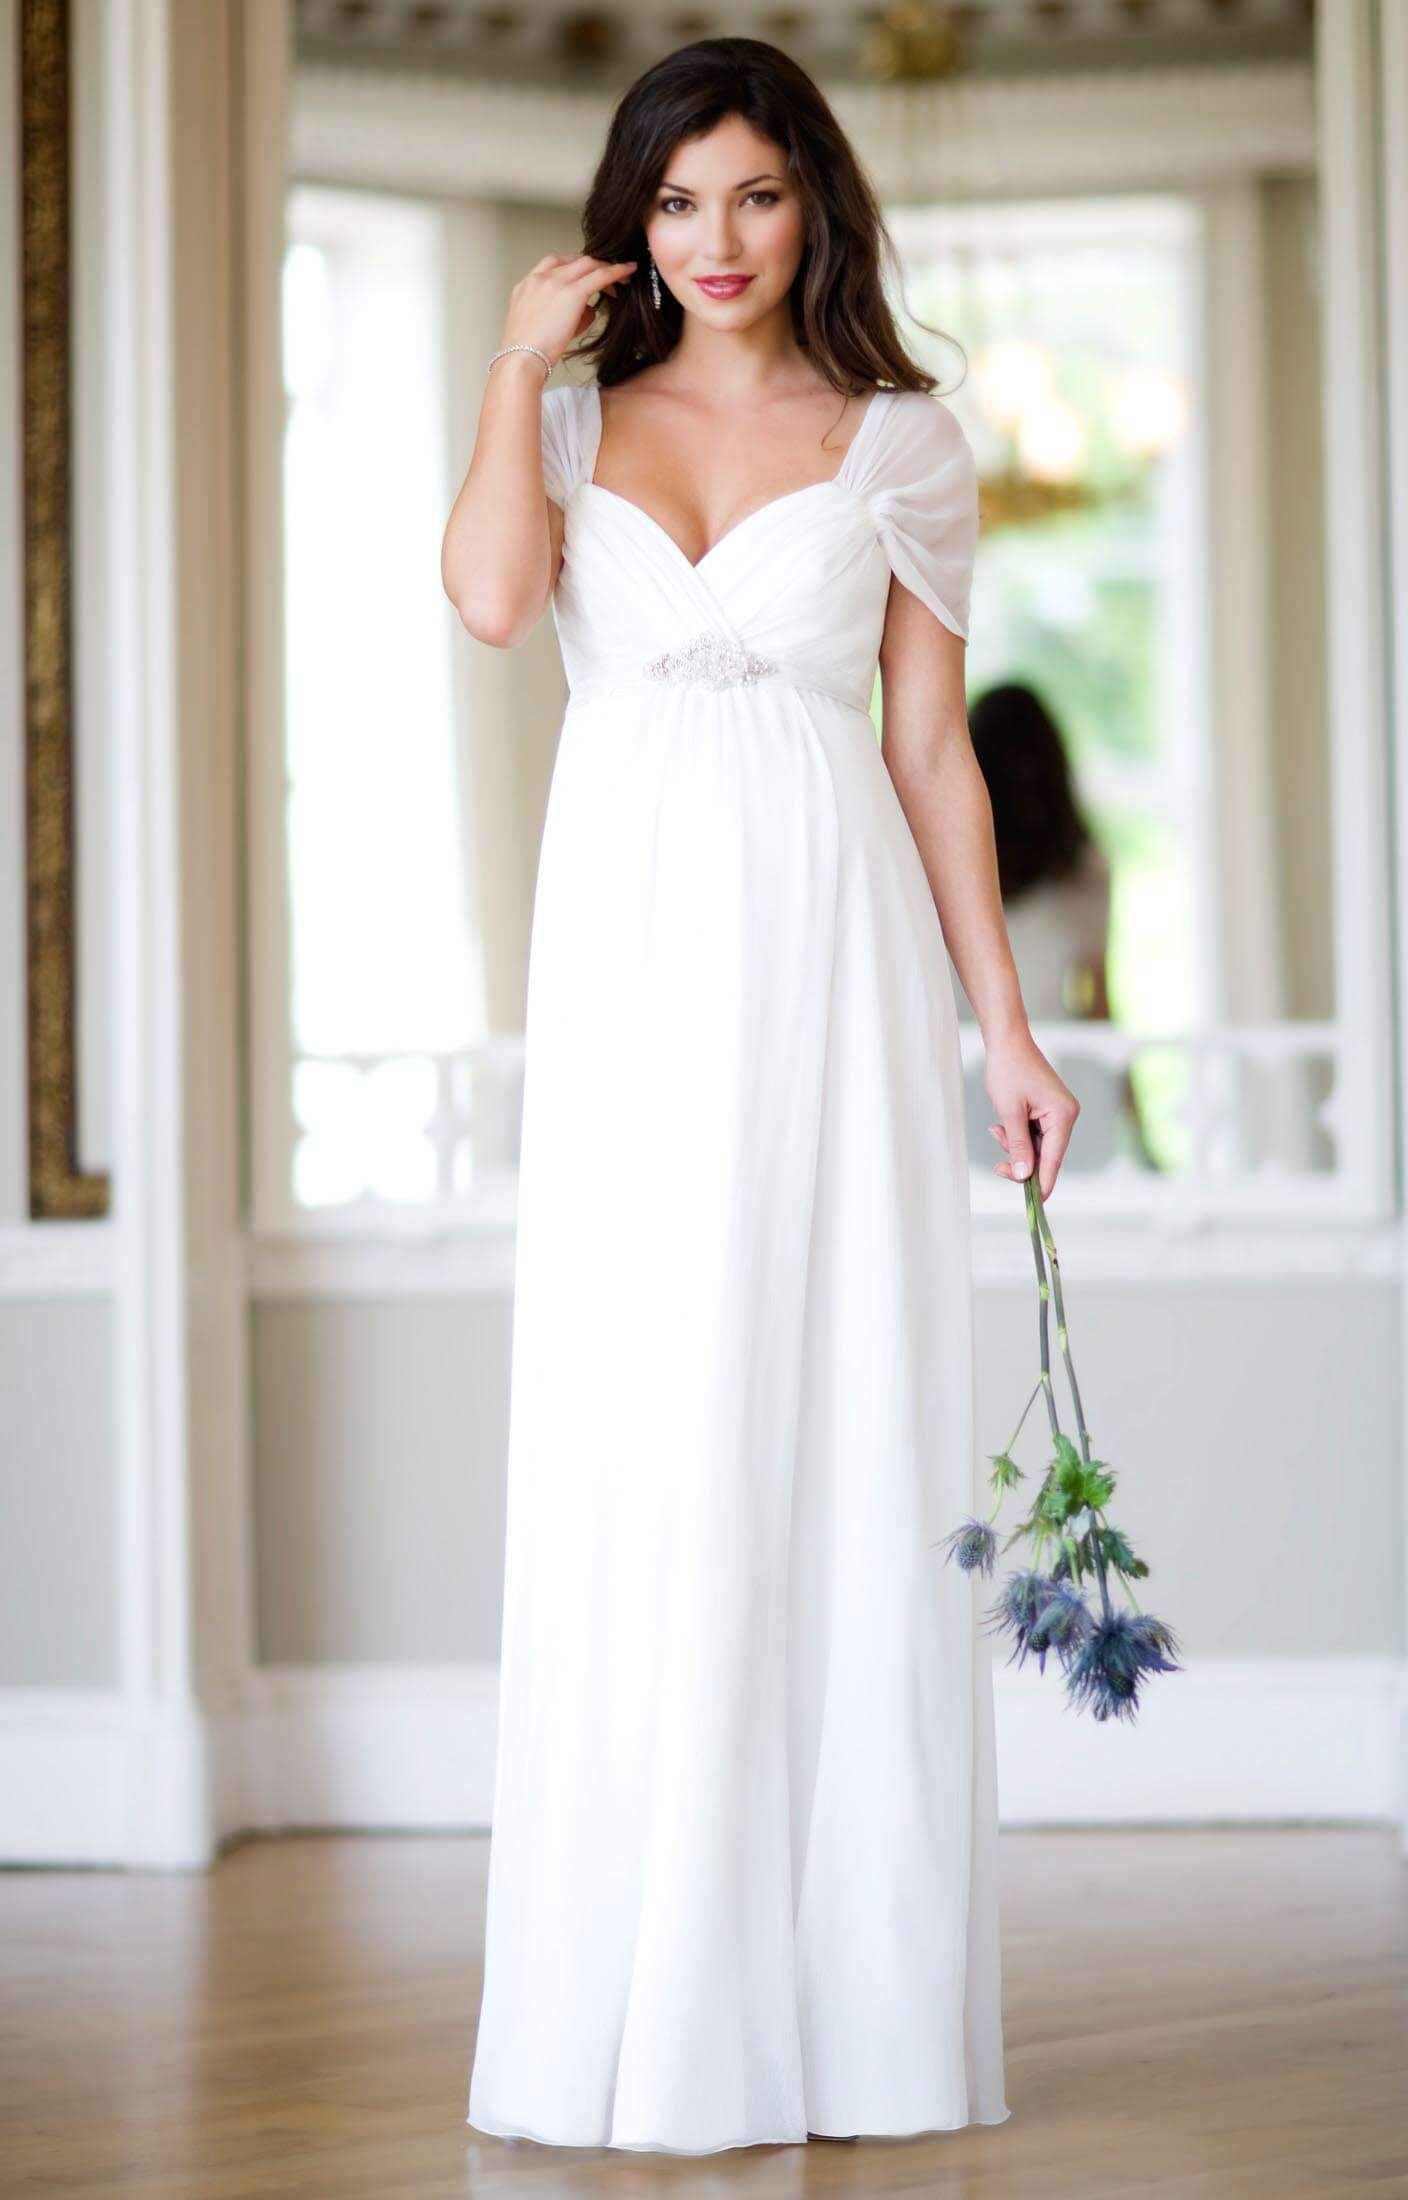 Wedding Dress 4 Cheap Reviews